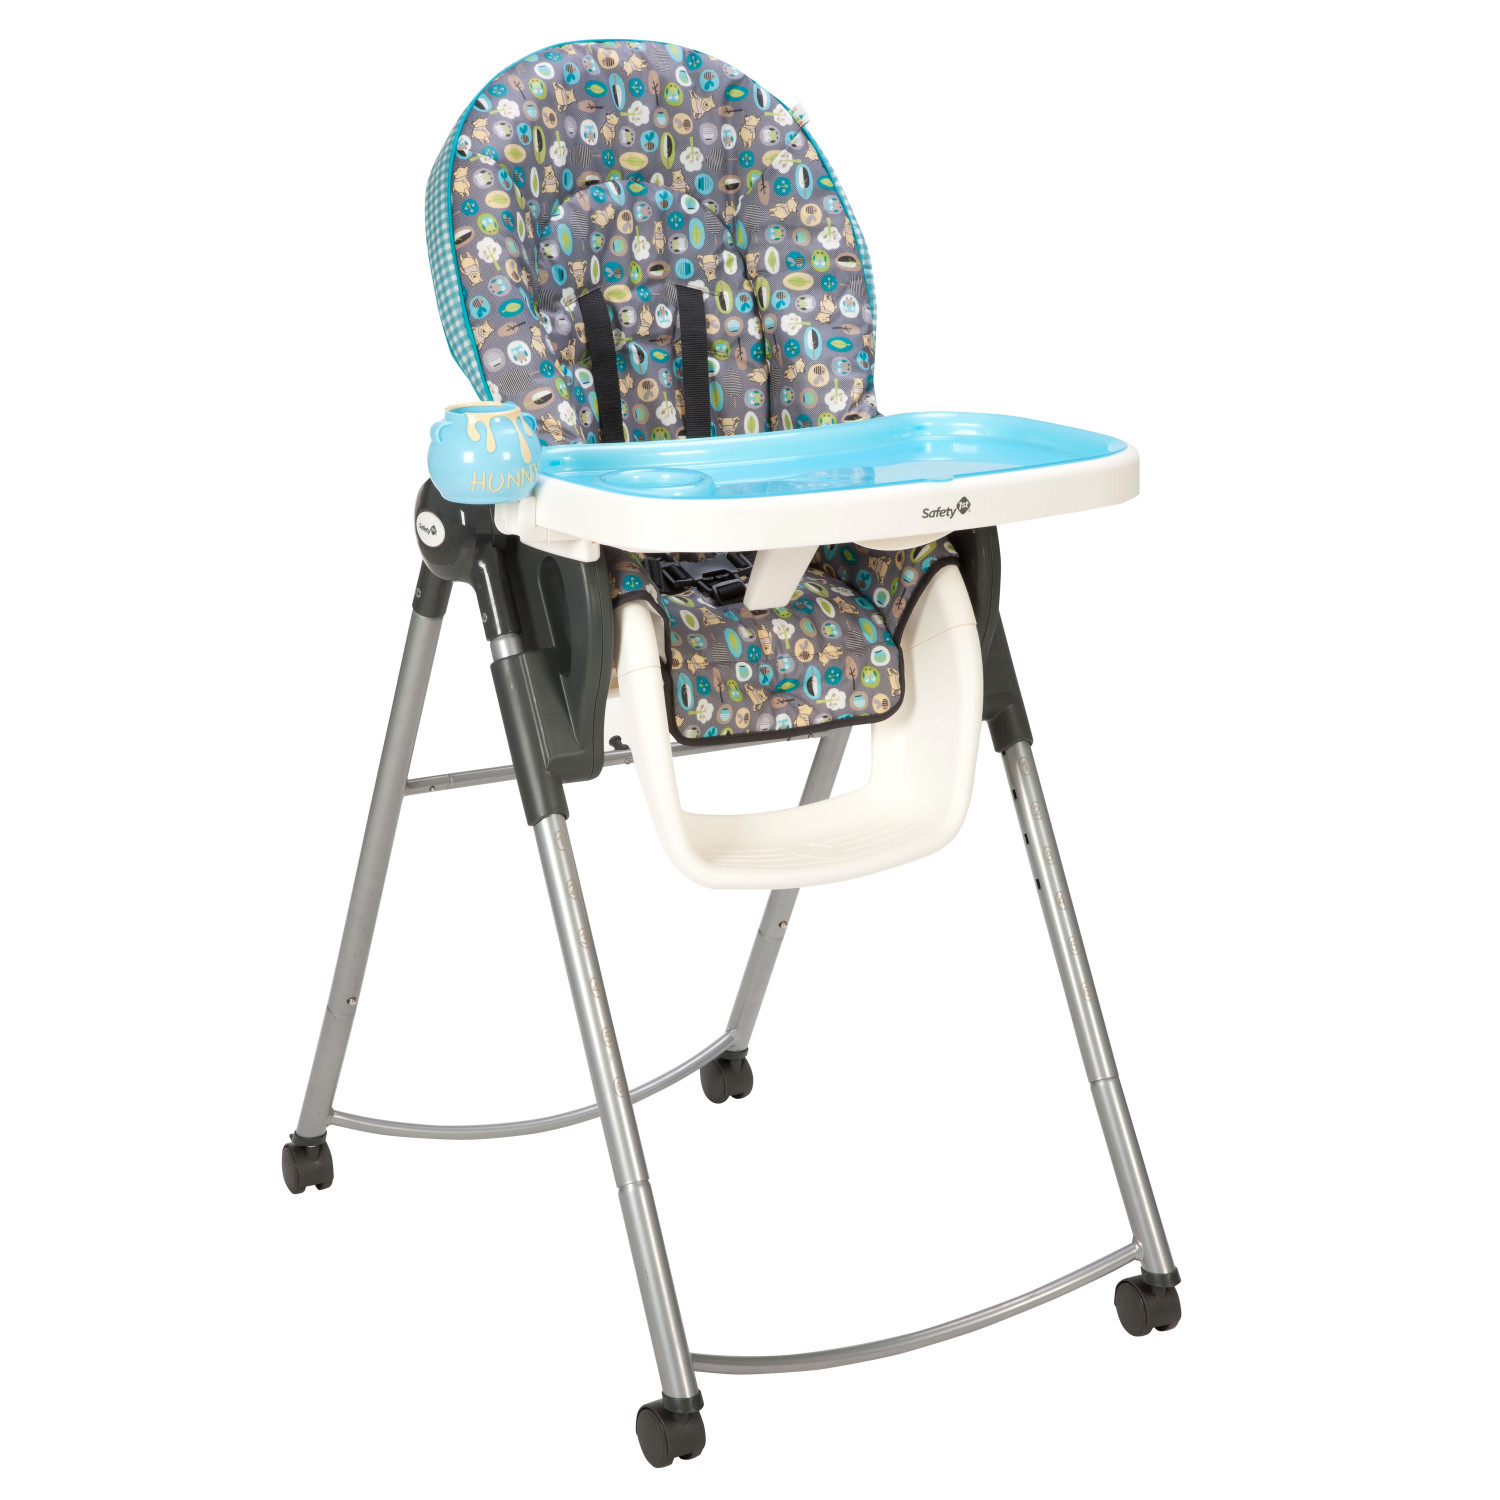 Baby Chairs Walmart Baby Value On Walmart Seller Reviews Marketplace Rating